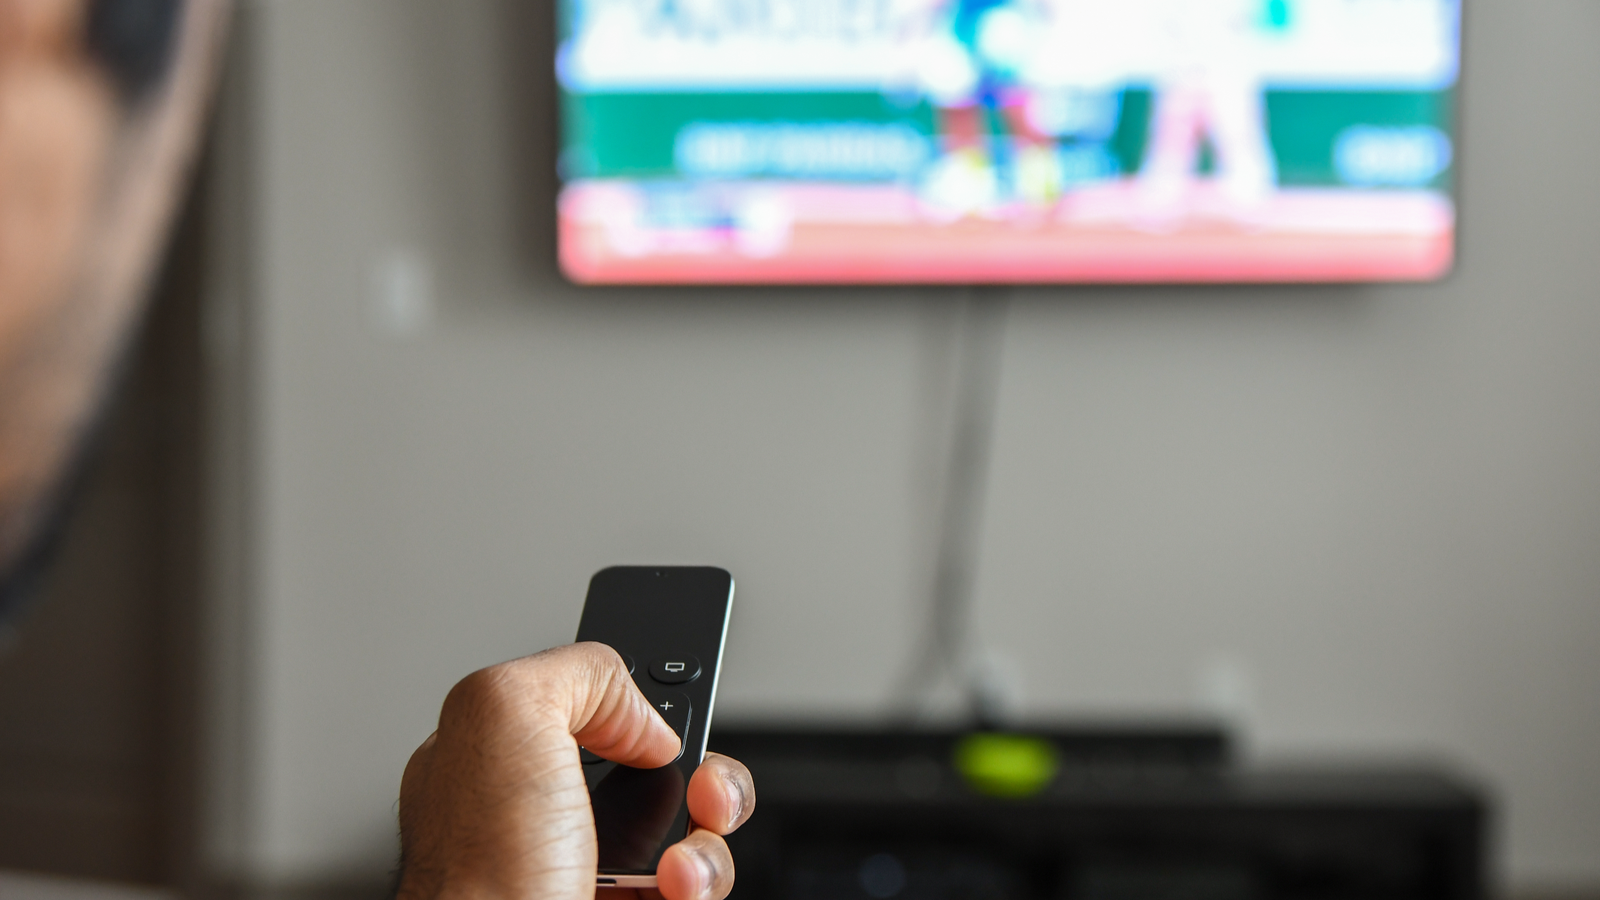 A man's hand using an Apple TV remote.